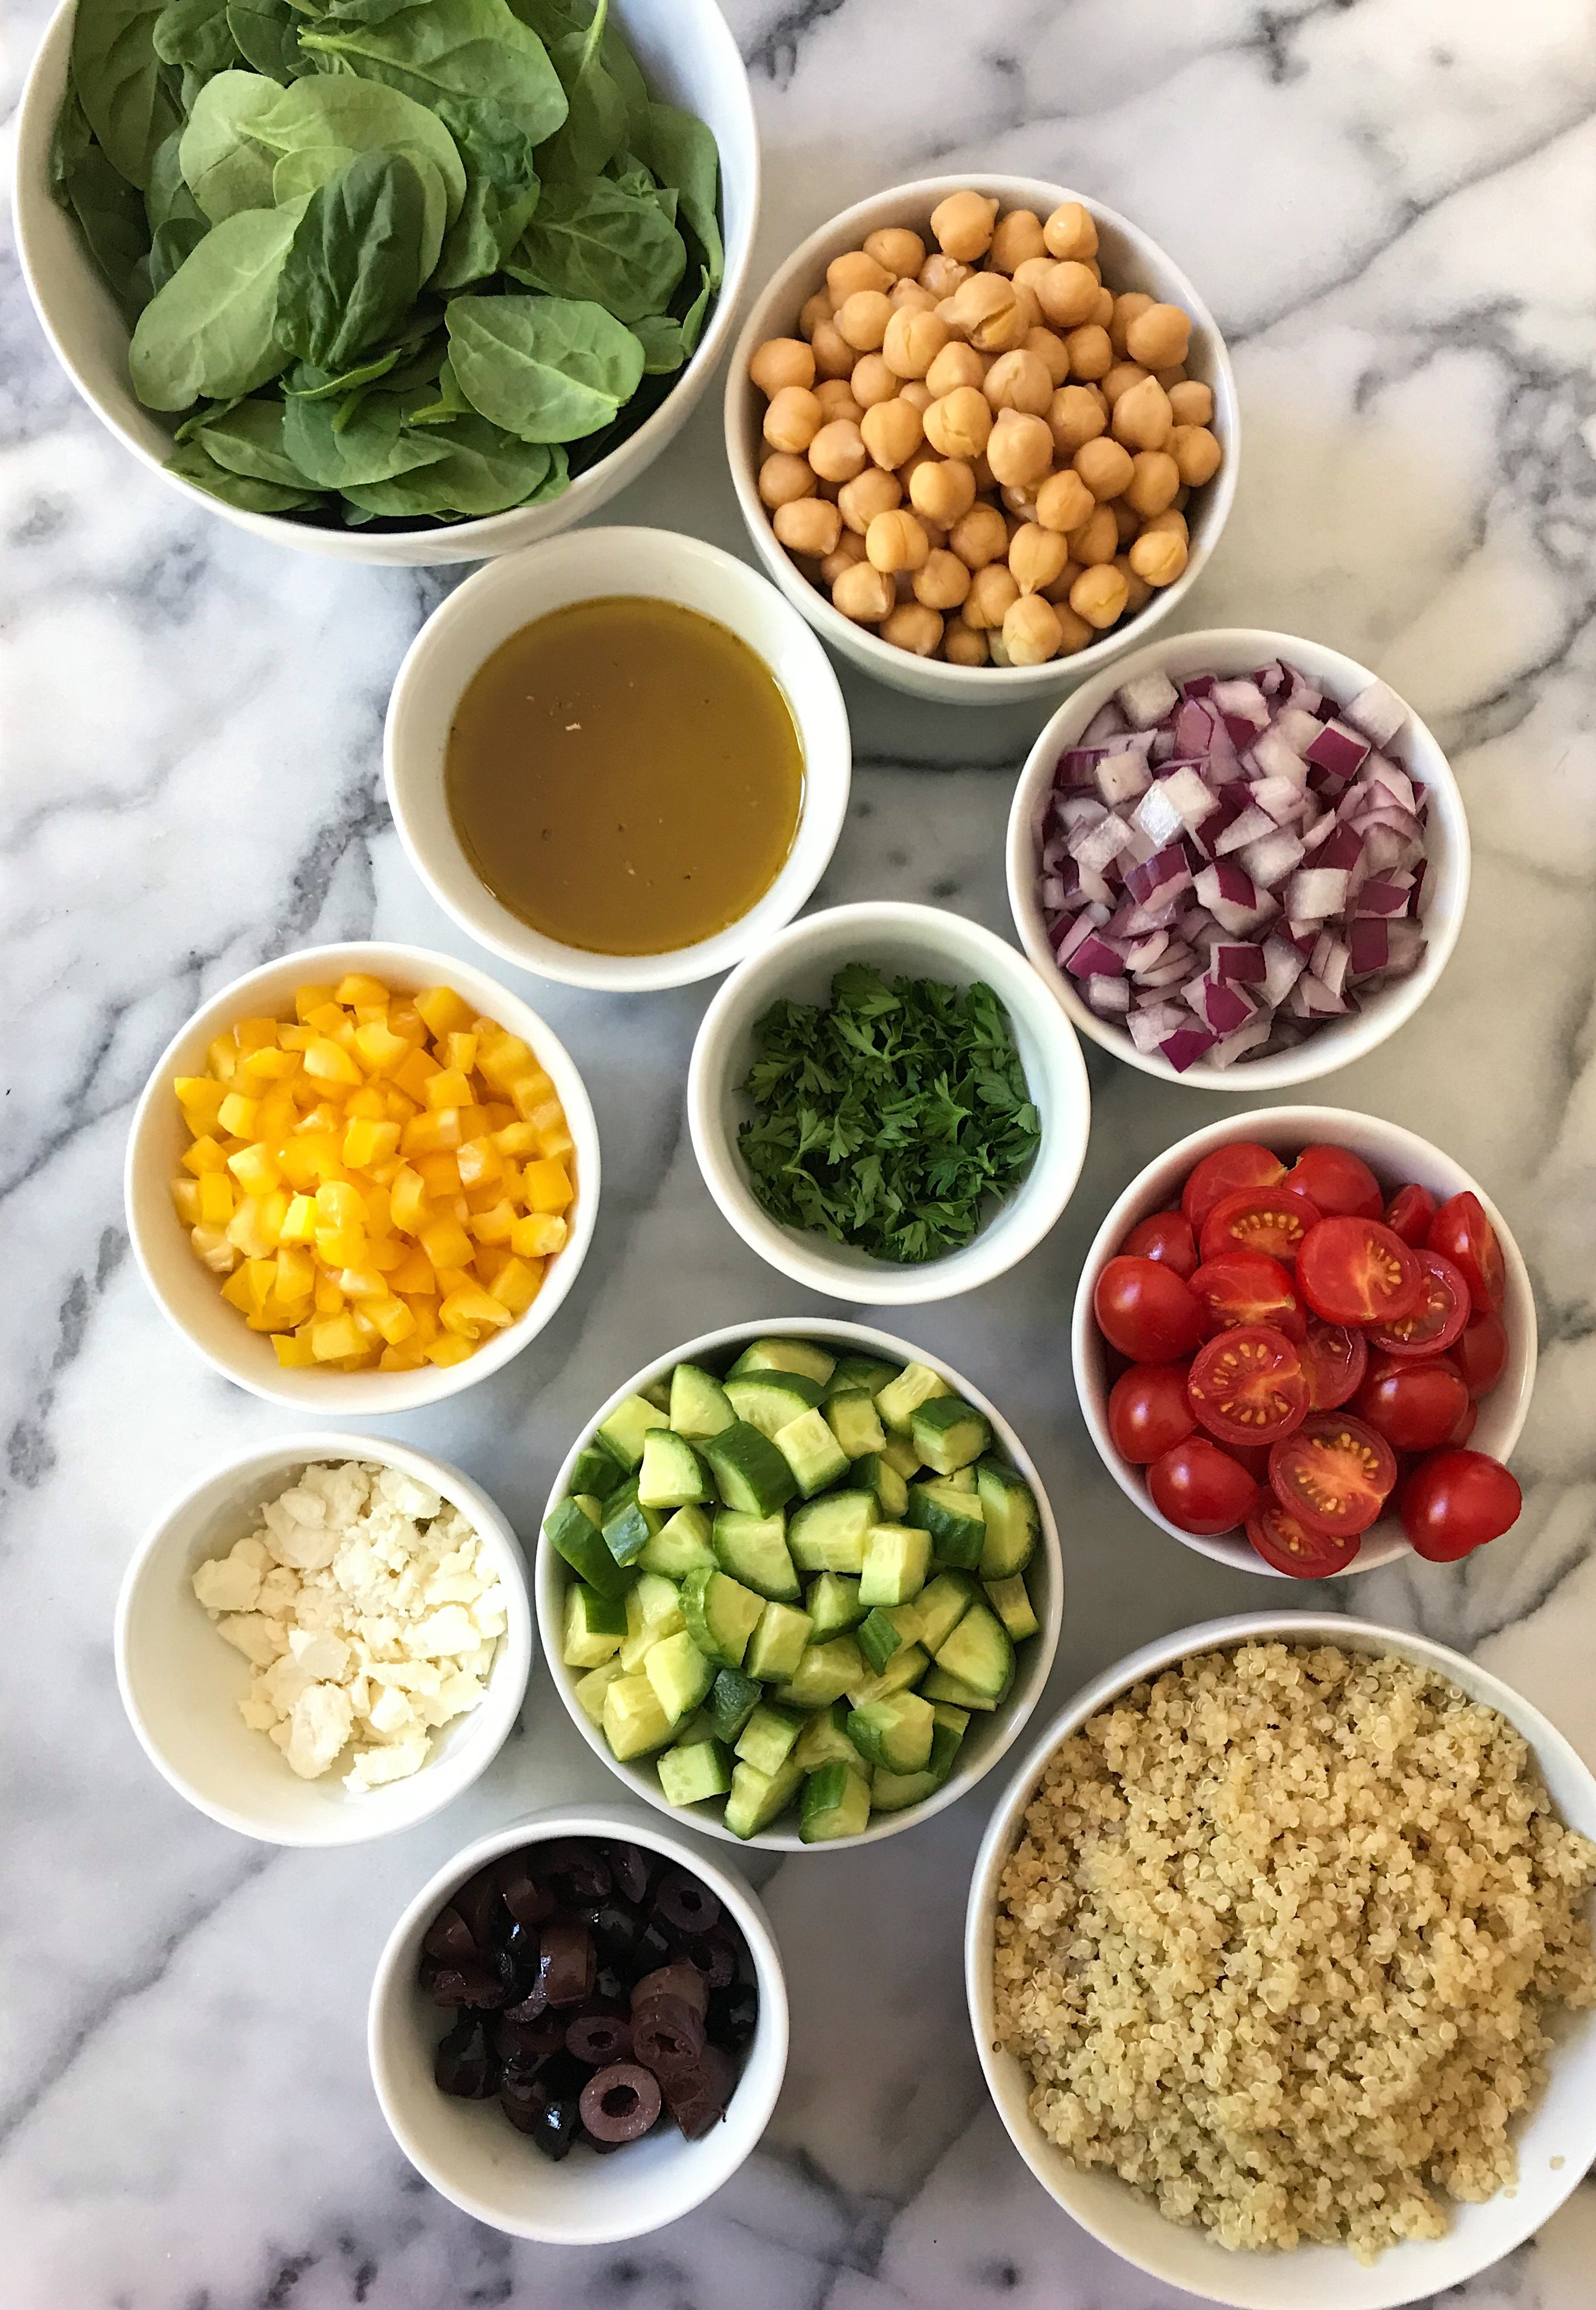 Greek Chickpea Salad #glutenfree #glutenfreerecipes www.healthygffamily.com